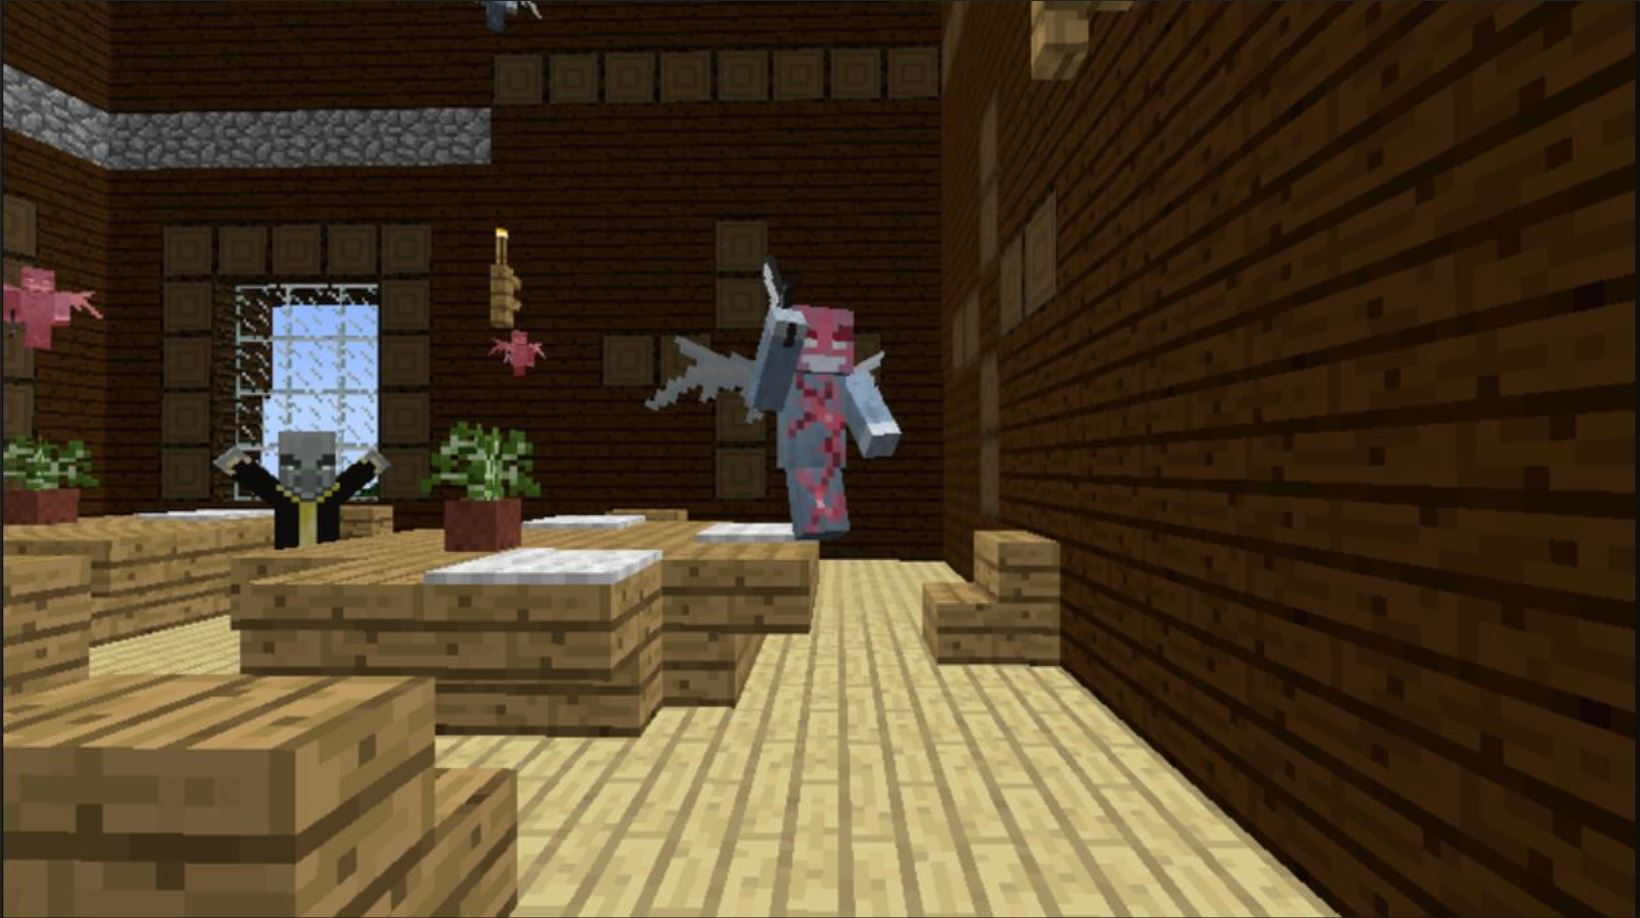 Minecraft Mobs Explored: Vex, A Evil Fairy Spawned And Controlled By The Evil Evoker